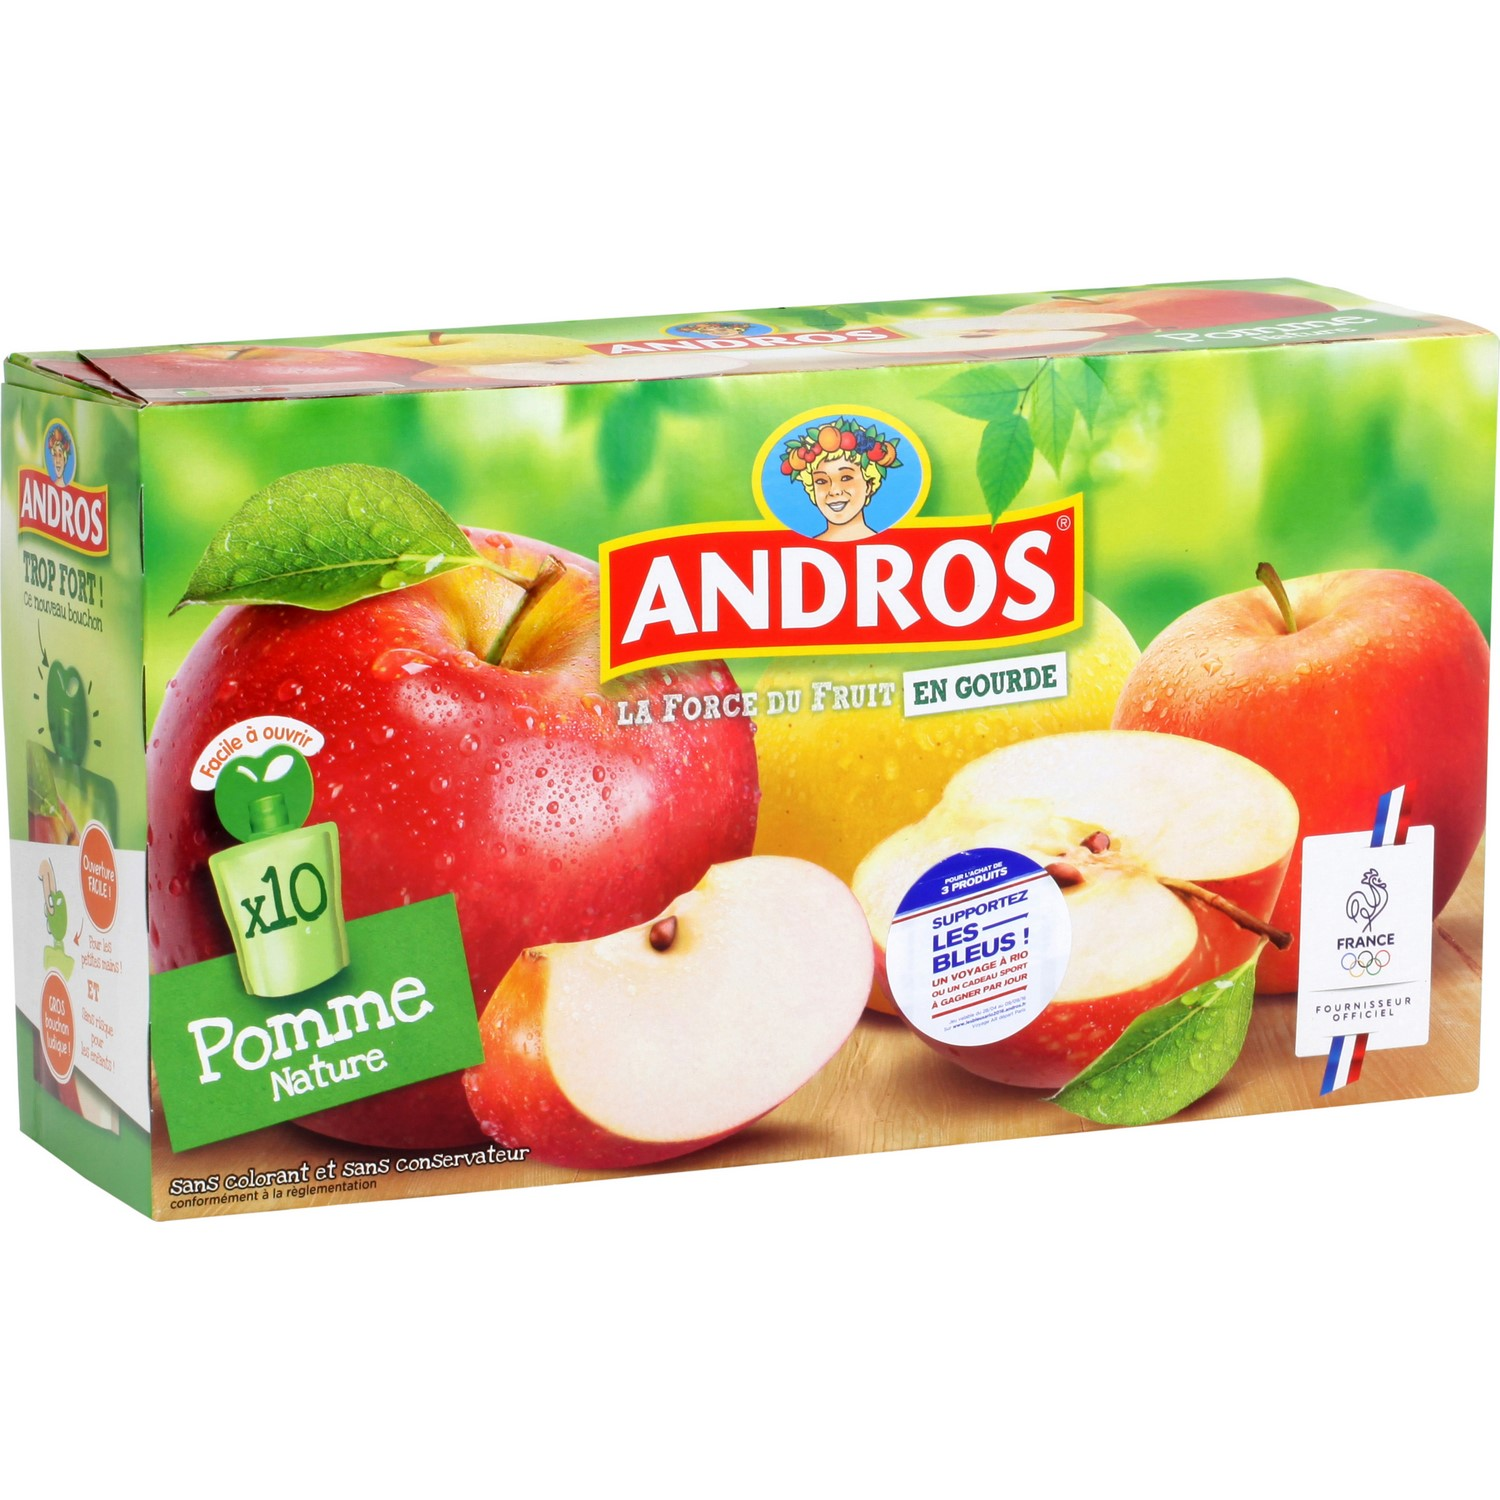 Compote-gourde Pomme nature, Andros (10 x 90 g)